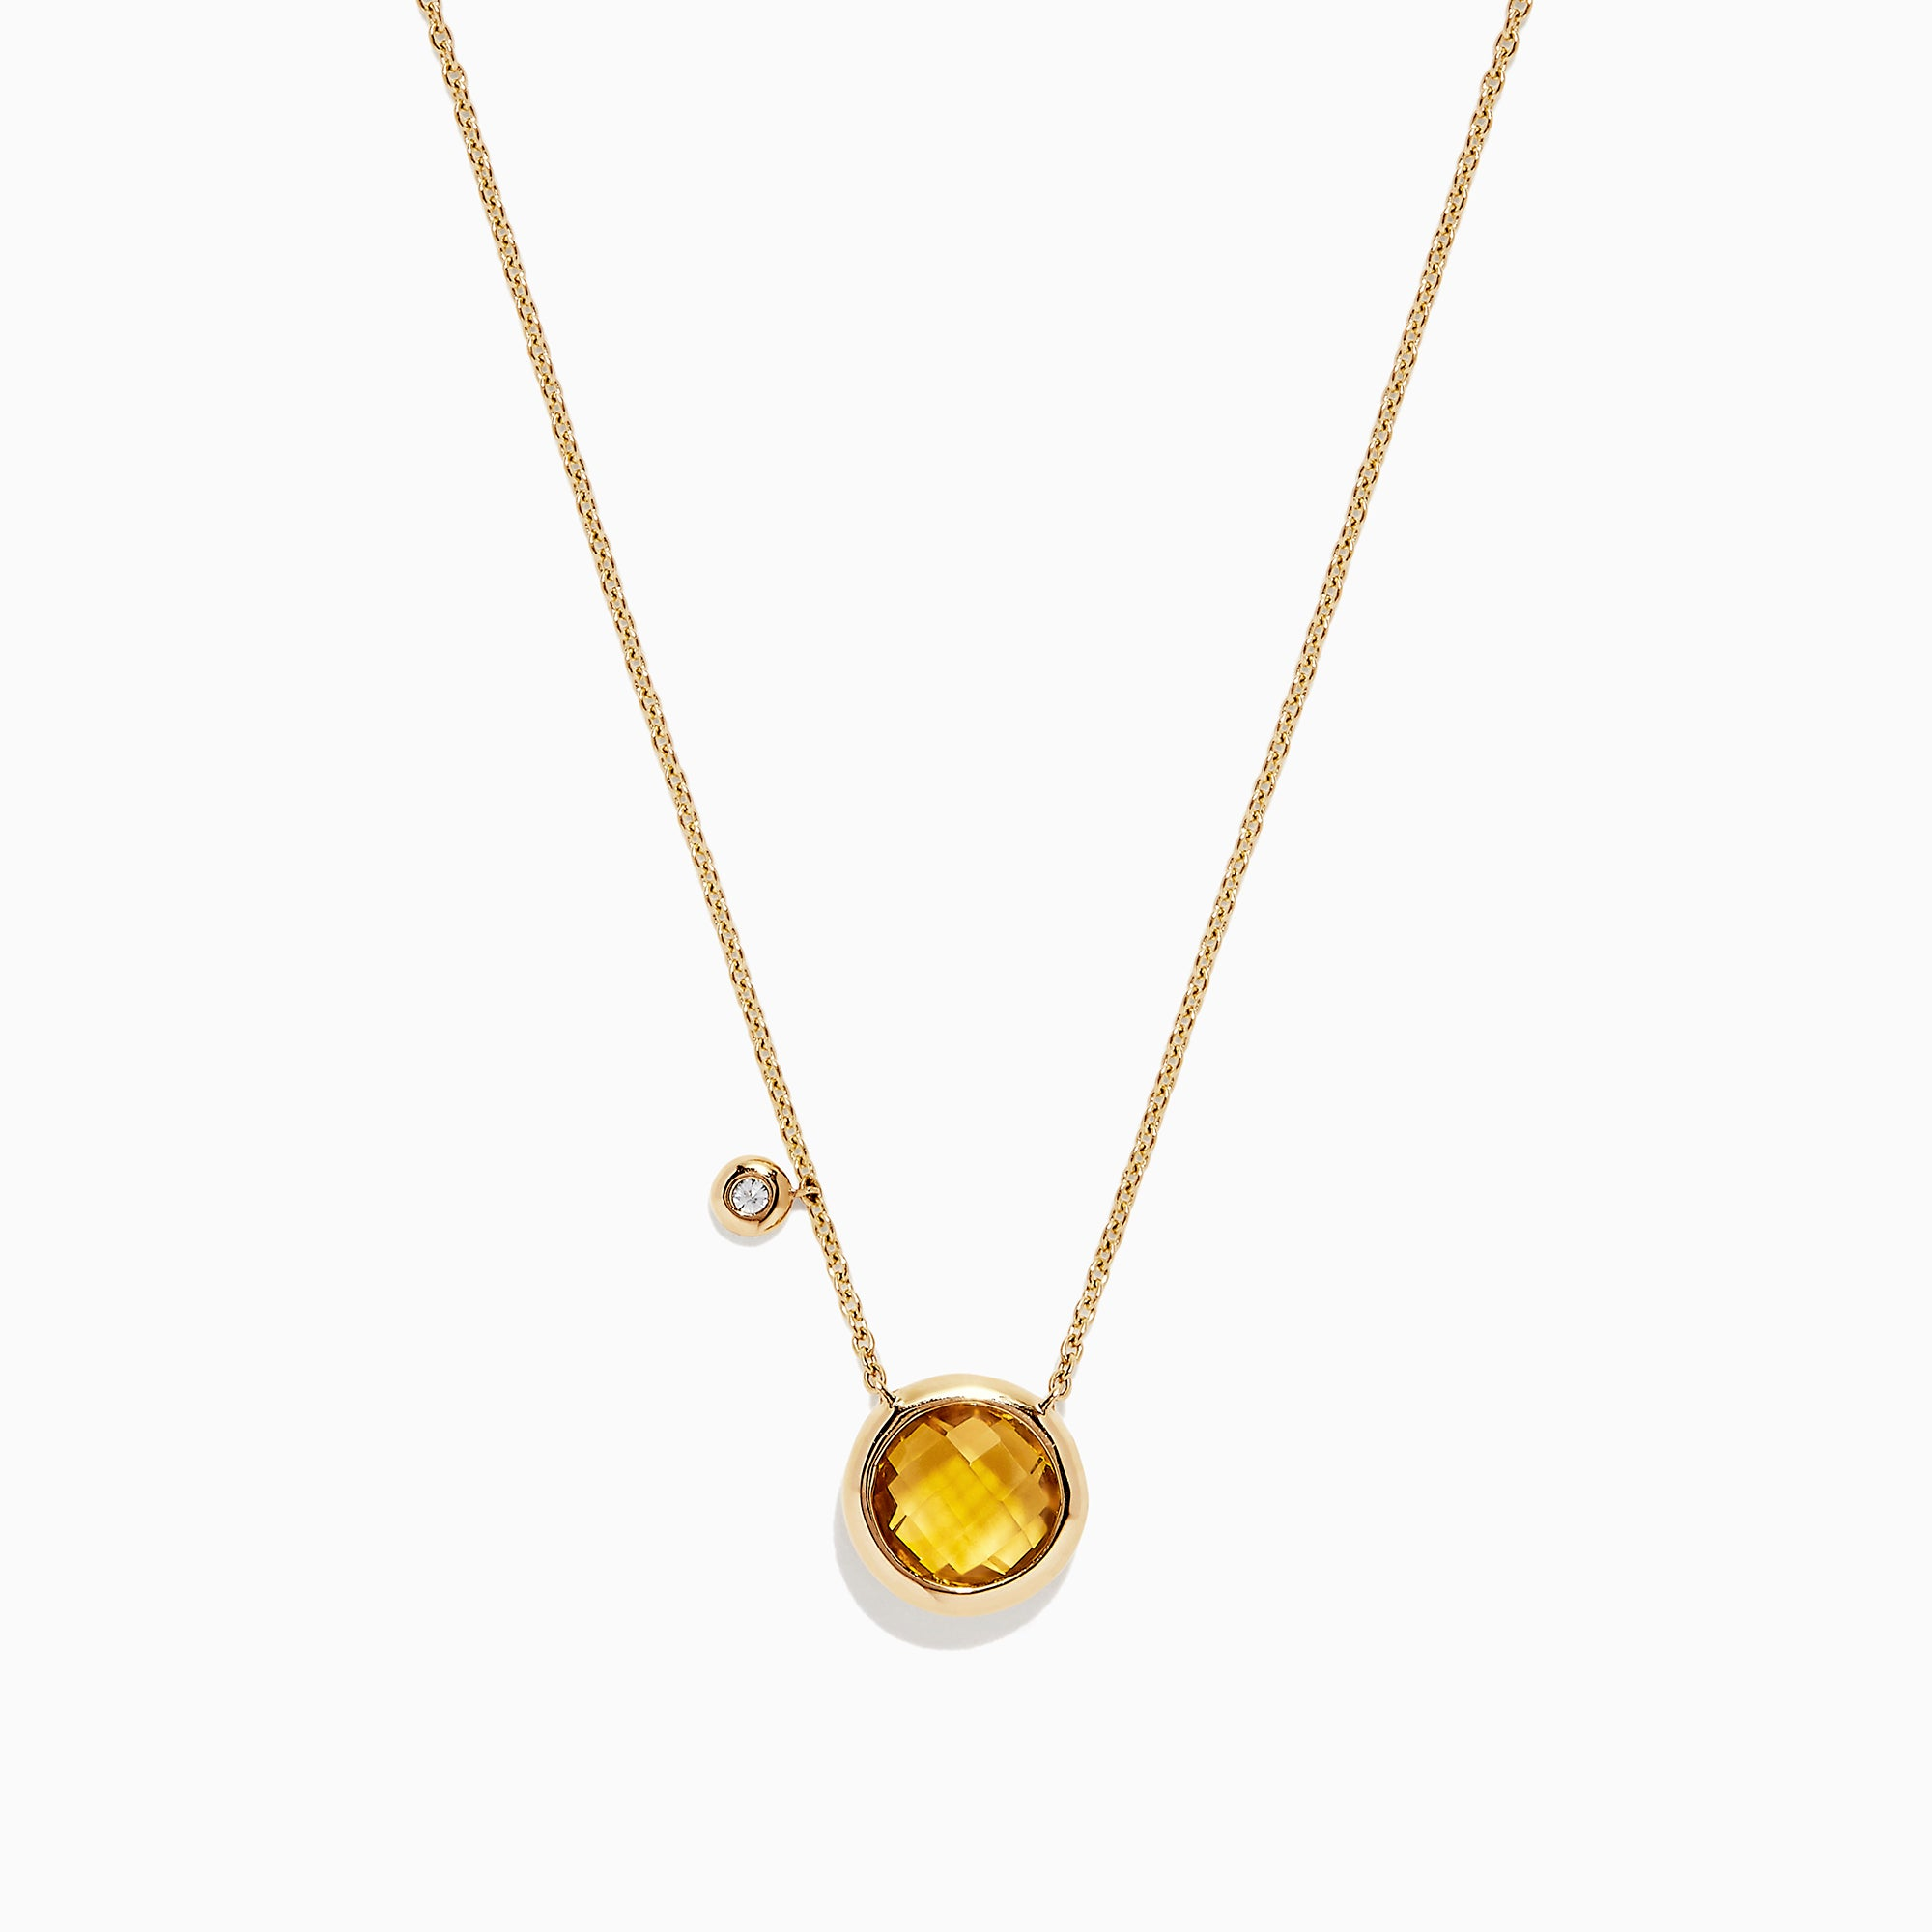 Effy Sunset 14K Yellow Gold Citrine & Diamond Bolo Chain Necklace, 1.53 TCW